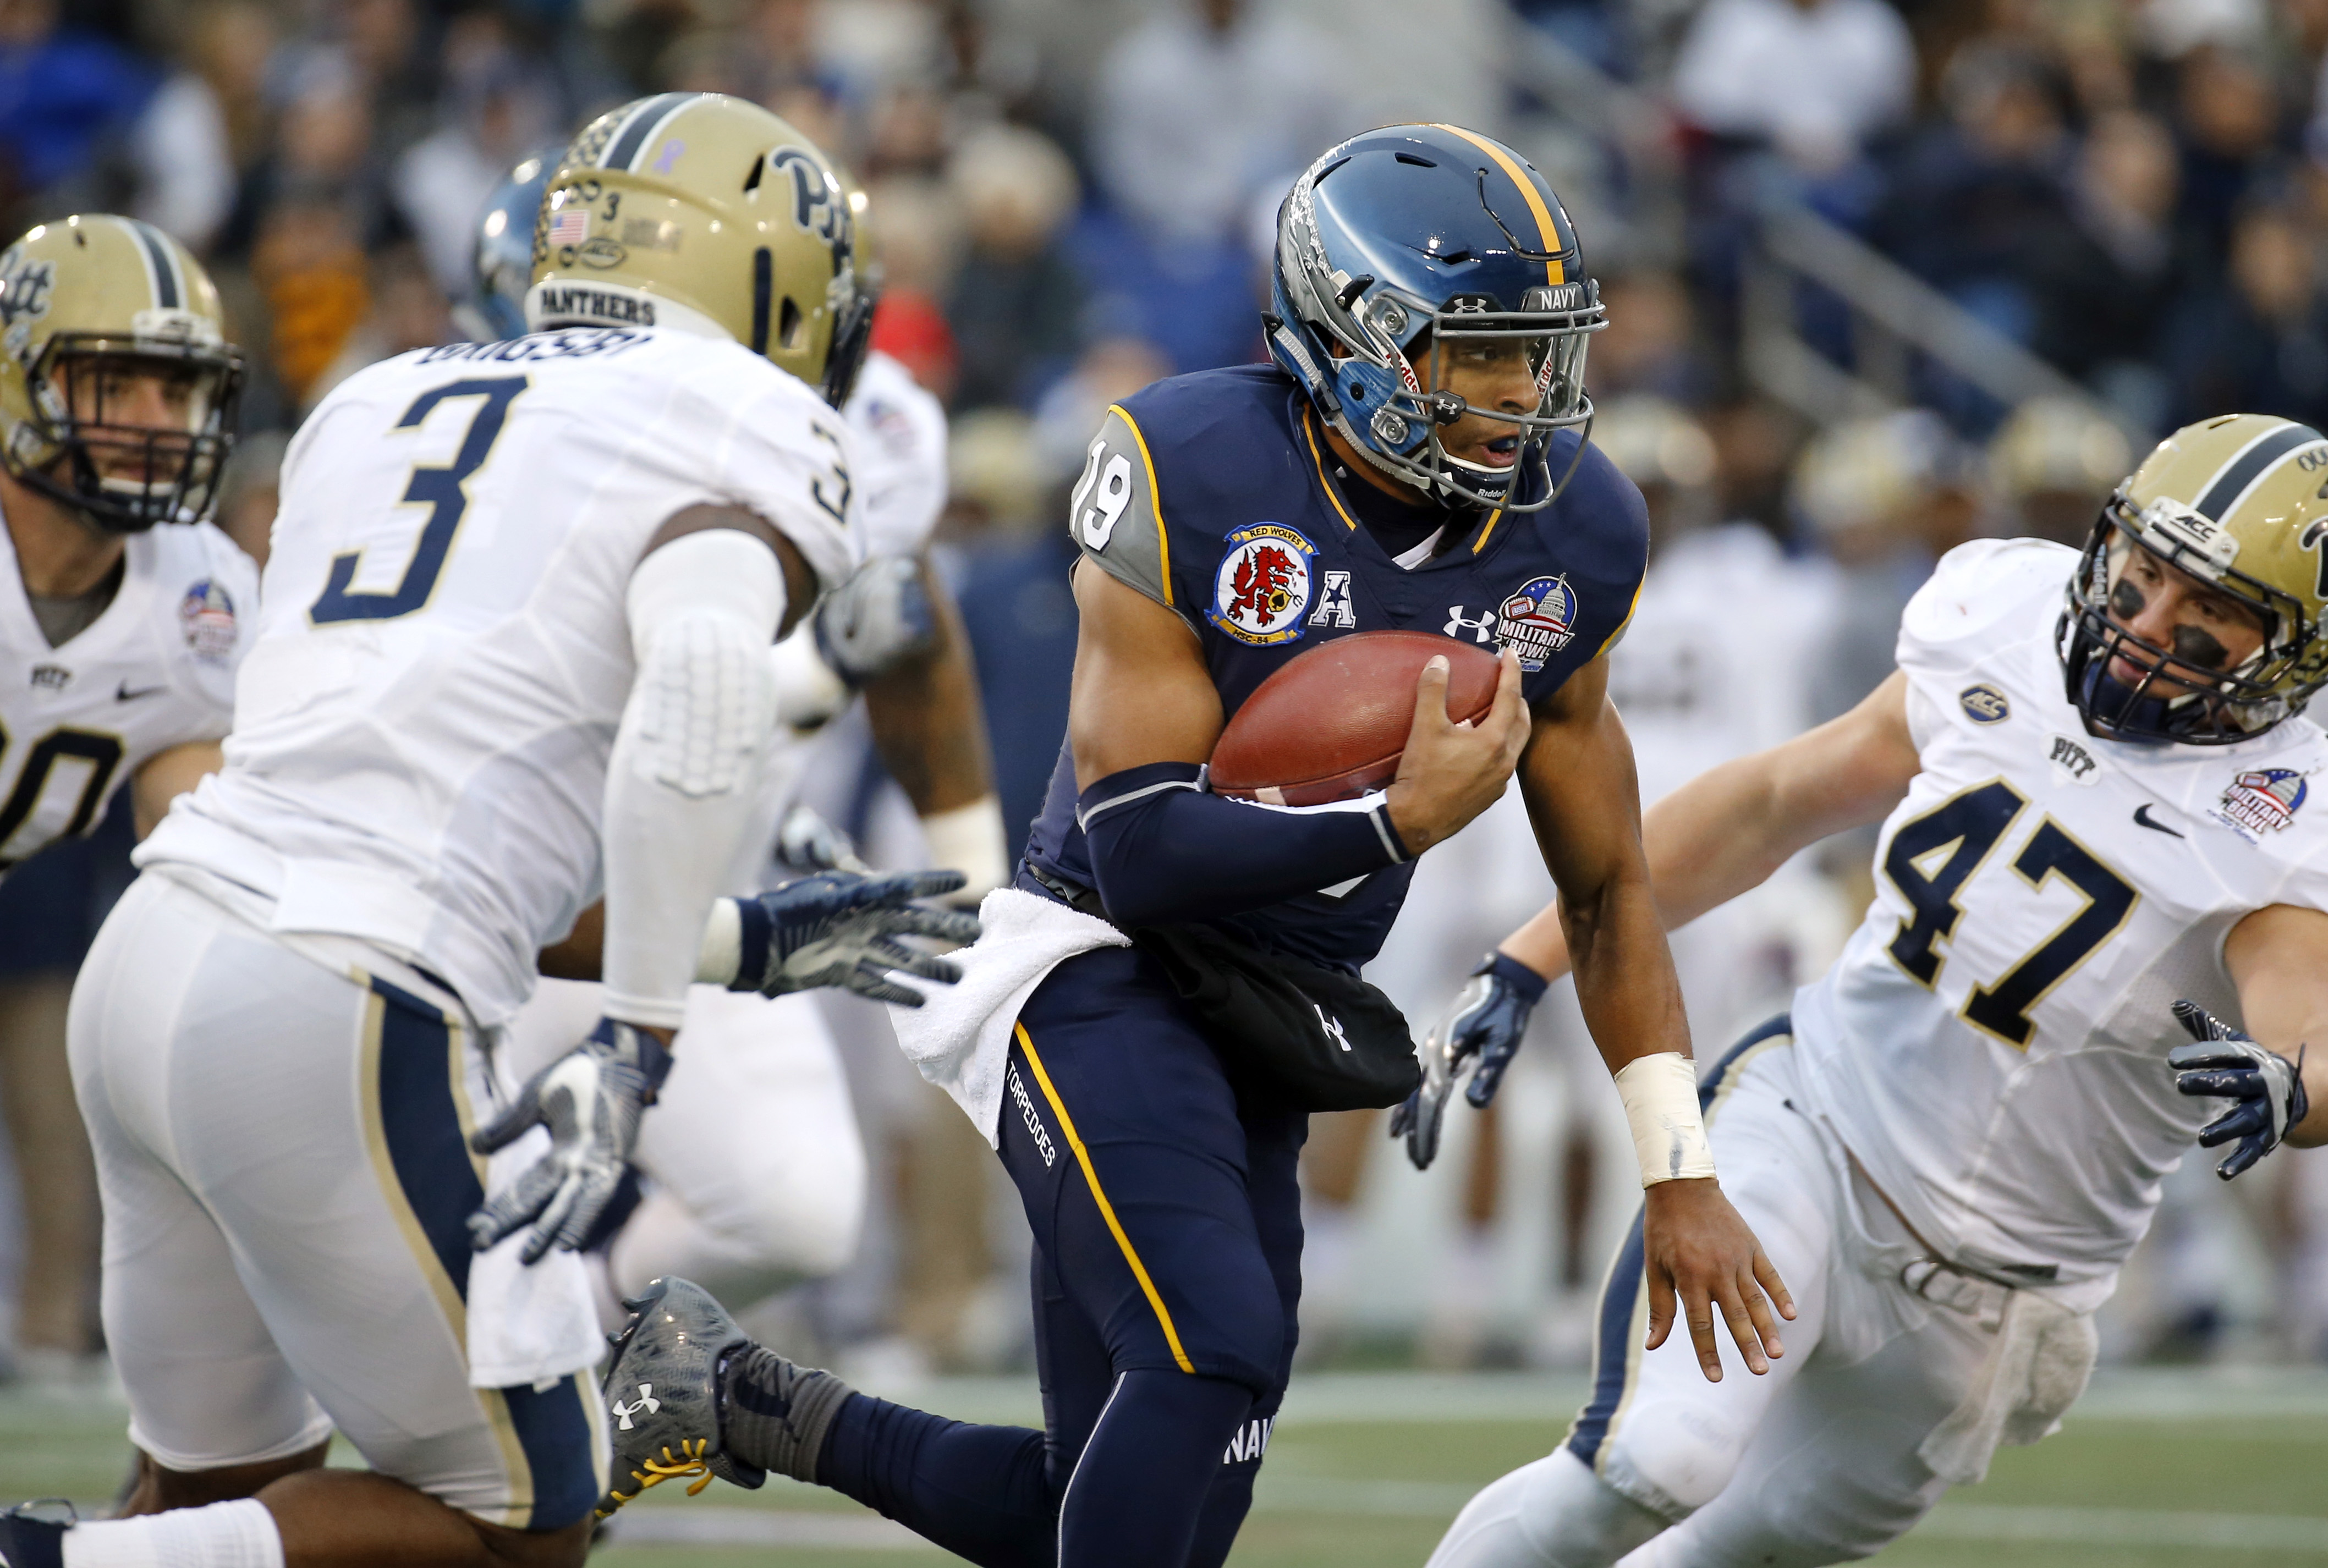 Navy quarterback Keenan Reynolds, center, rushes between Pittsburgh linebackers Nicholas Grigsby (3) and Matt Galambos (47) in the first half of the Military Bowl NCAA college football game, Monday, Dec. 28, 2015, in College Park, Md. (AP Photo/Patrick Se